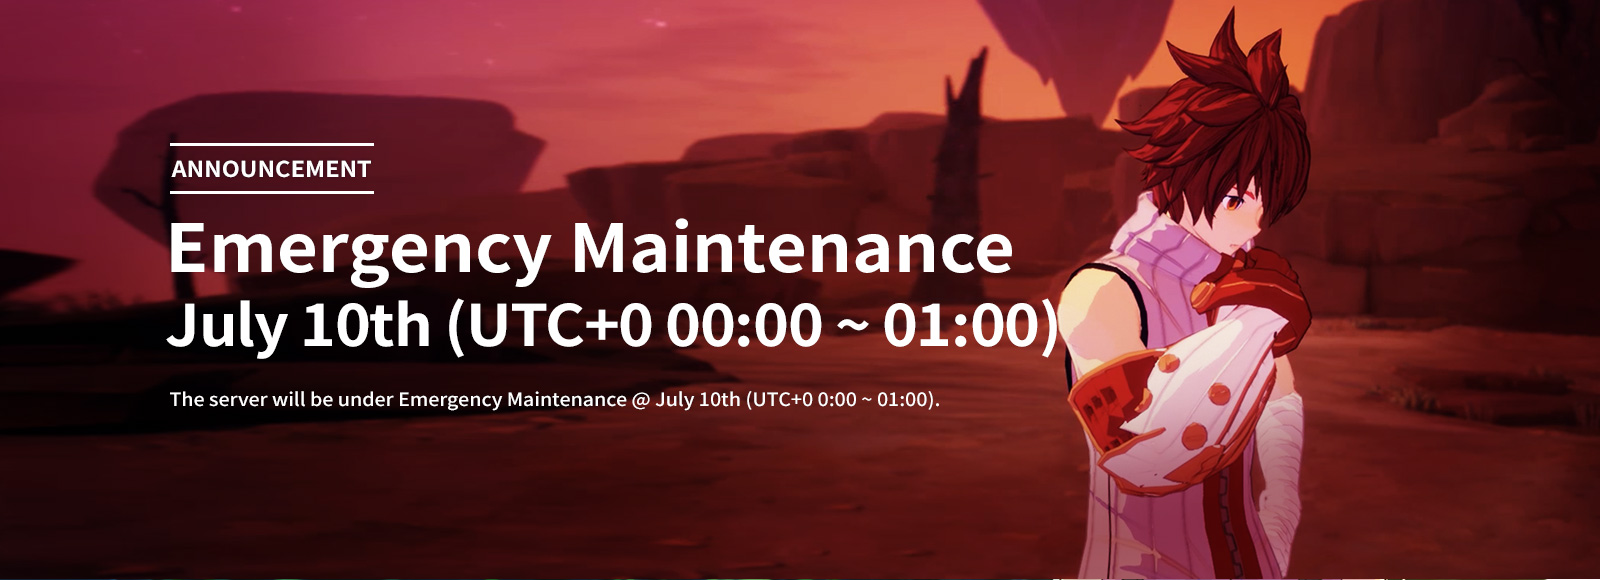 July 10th Emergency Maintenance Announcement